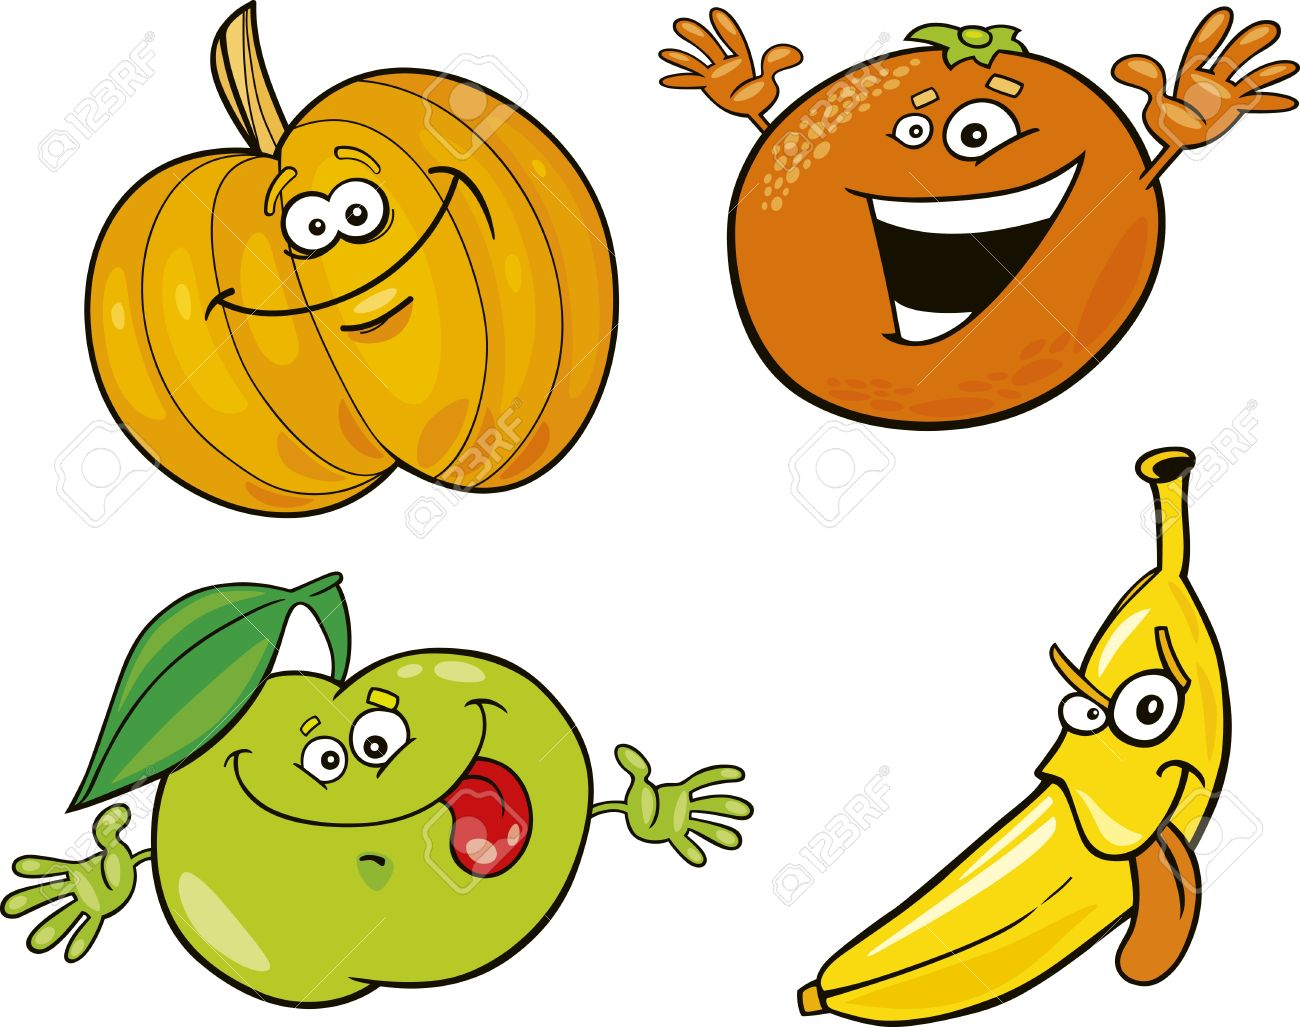 Banana clipart fruit and veg Clipart Collection Royalty Fruits Free